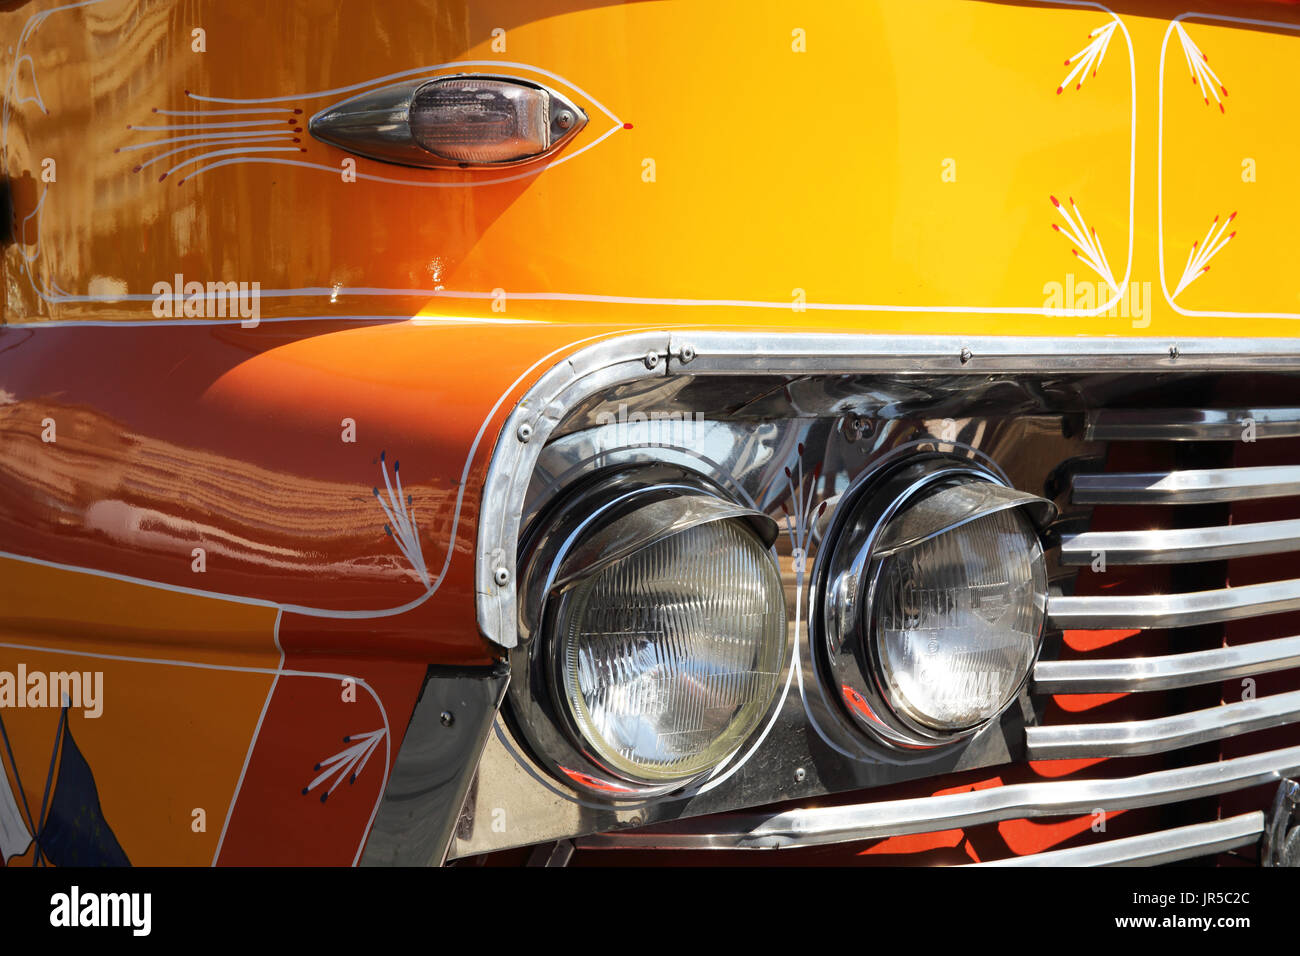 Vintage, canary yellow, iconic bus in Sliema, near Valletta, Malta - Stock Image